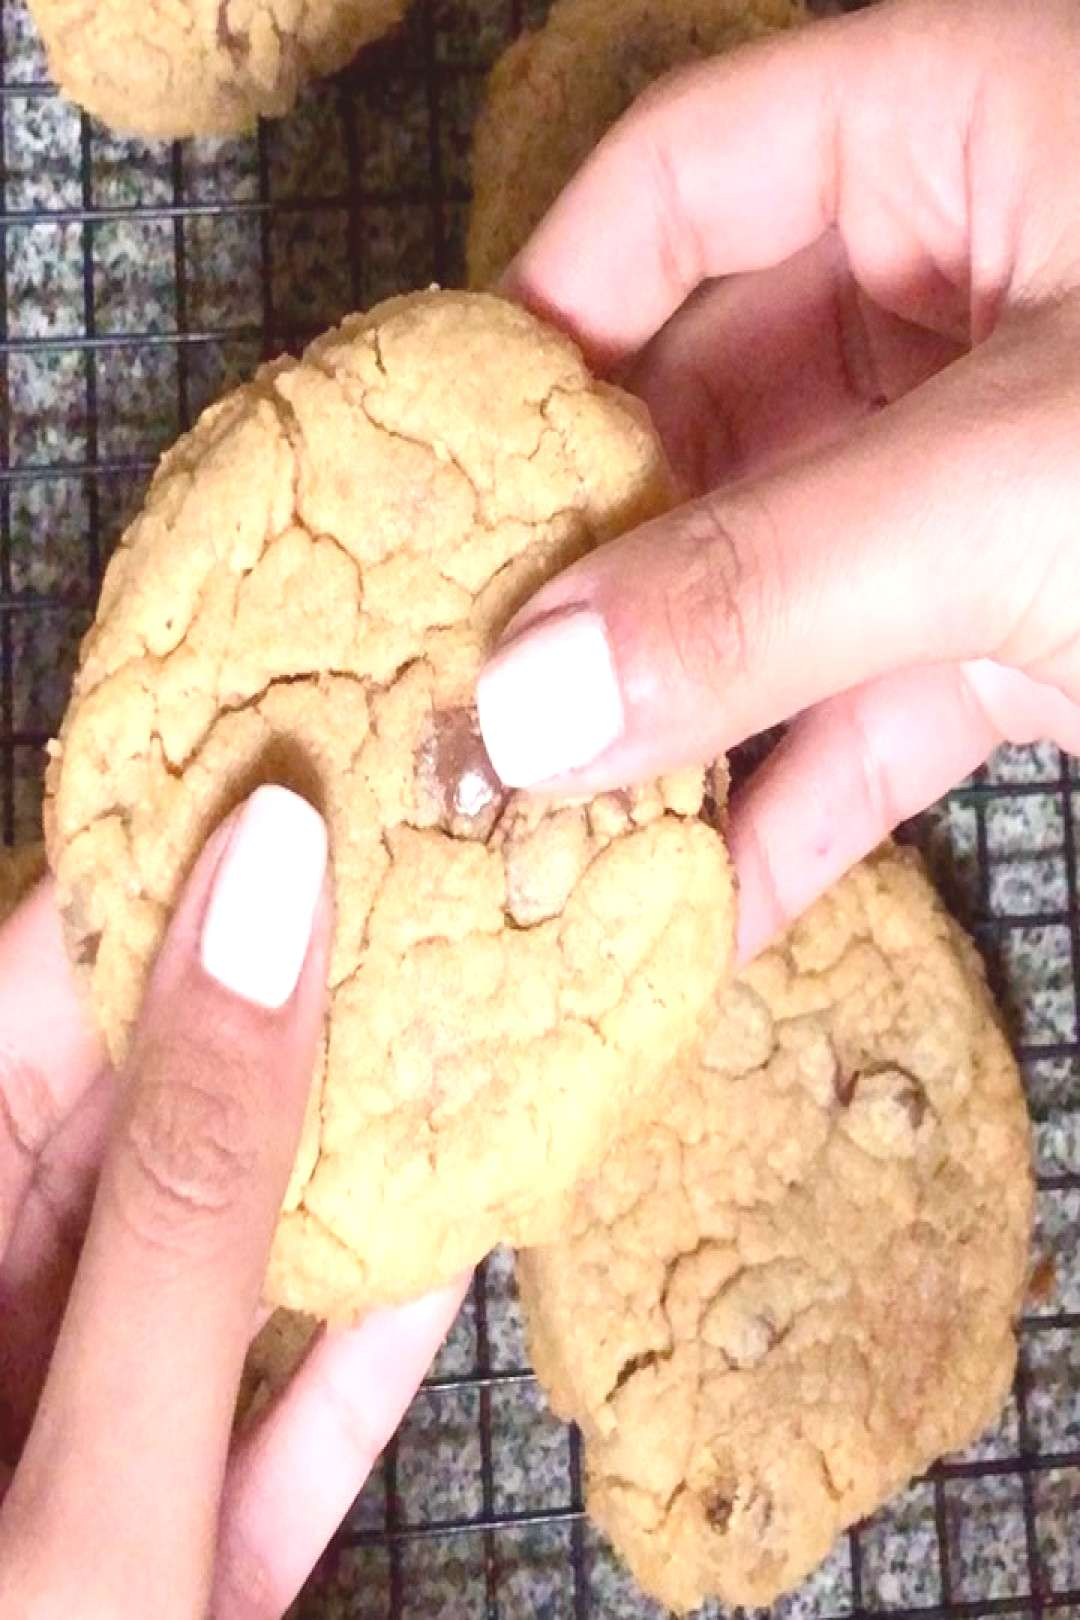 More delicious cookies from Betty Crocker, the Chocolate Chip Mix